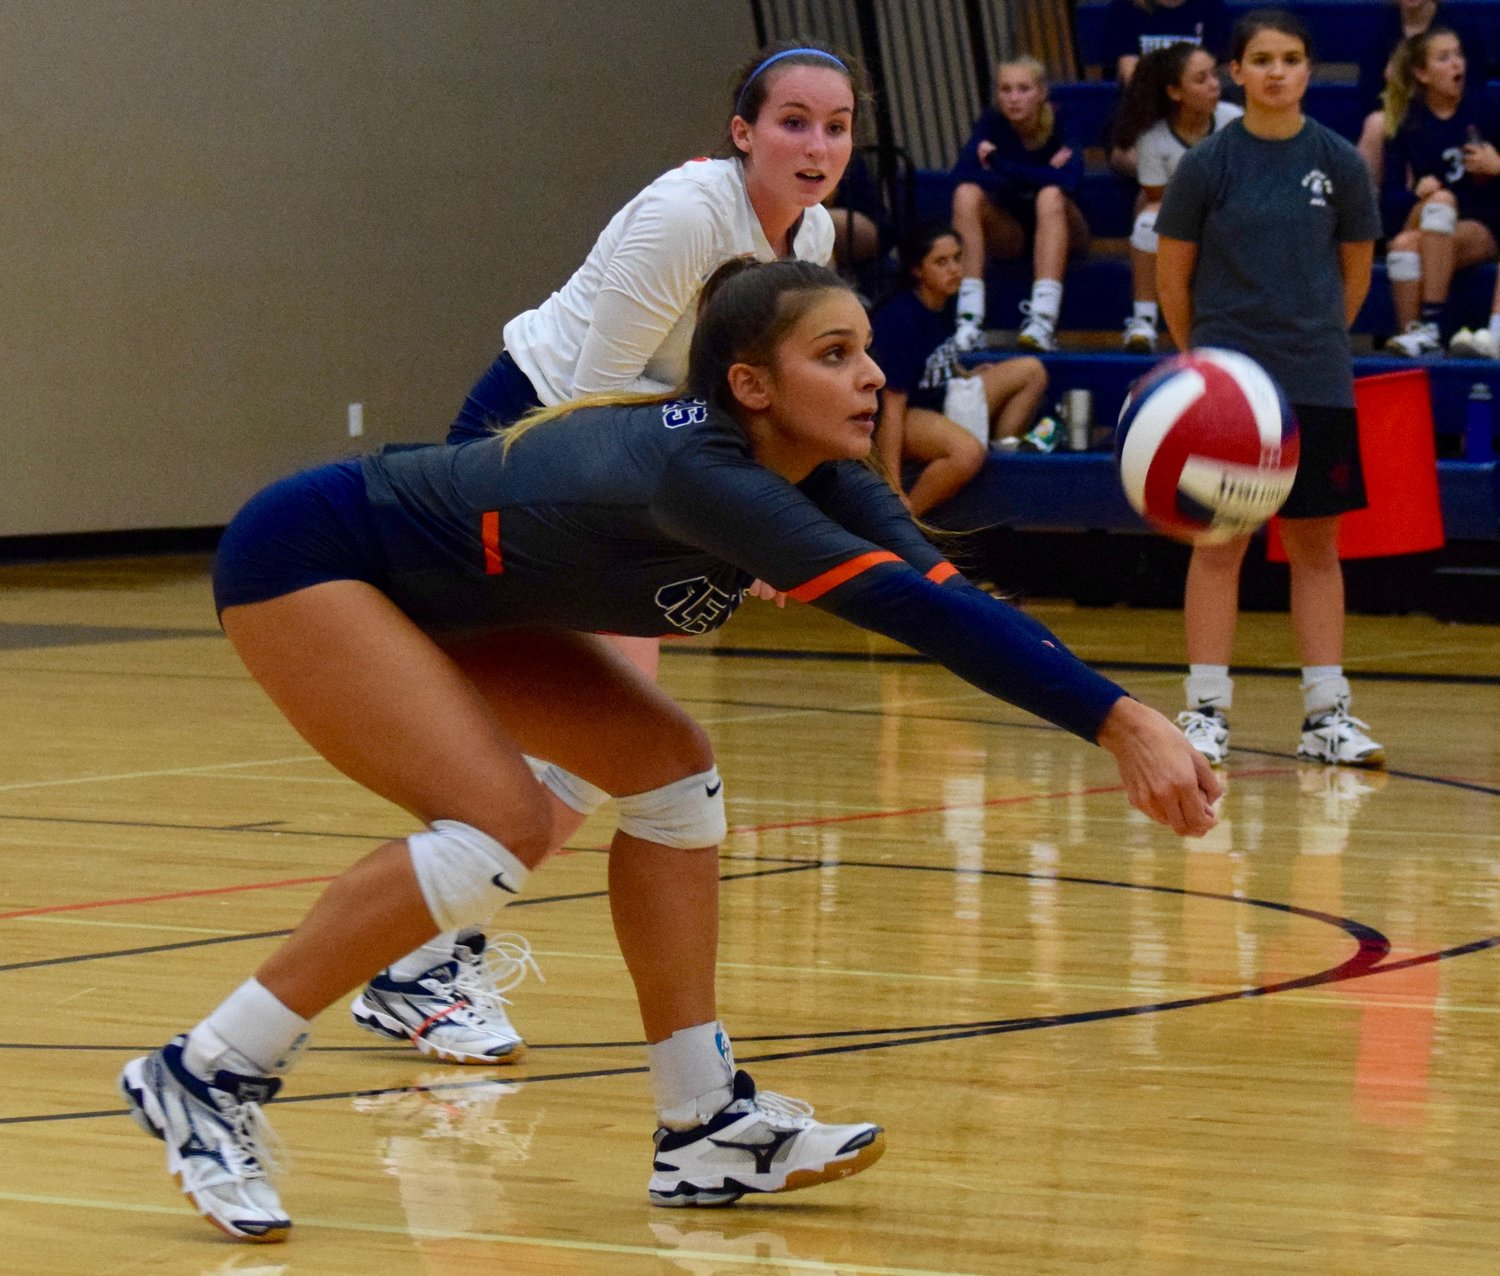 Sydney Carvajal and Glenn were swept by Rouse 3-0 (25-11, 25-10, 25-19) Tuesday night at home.